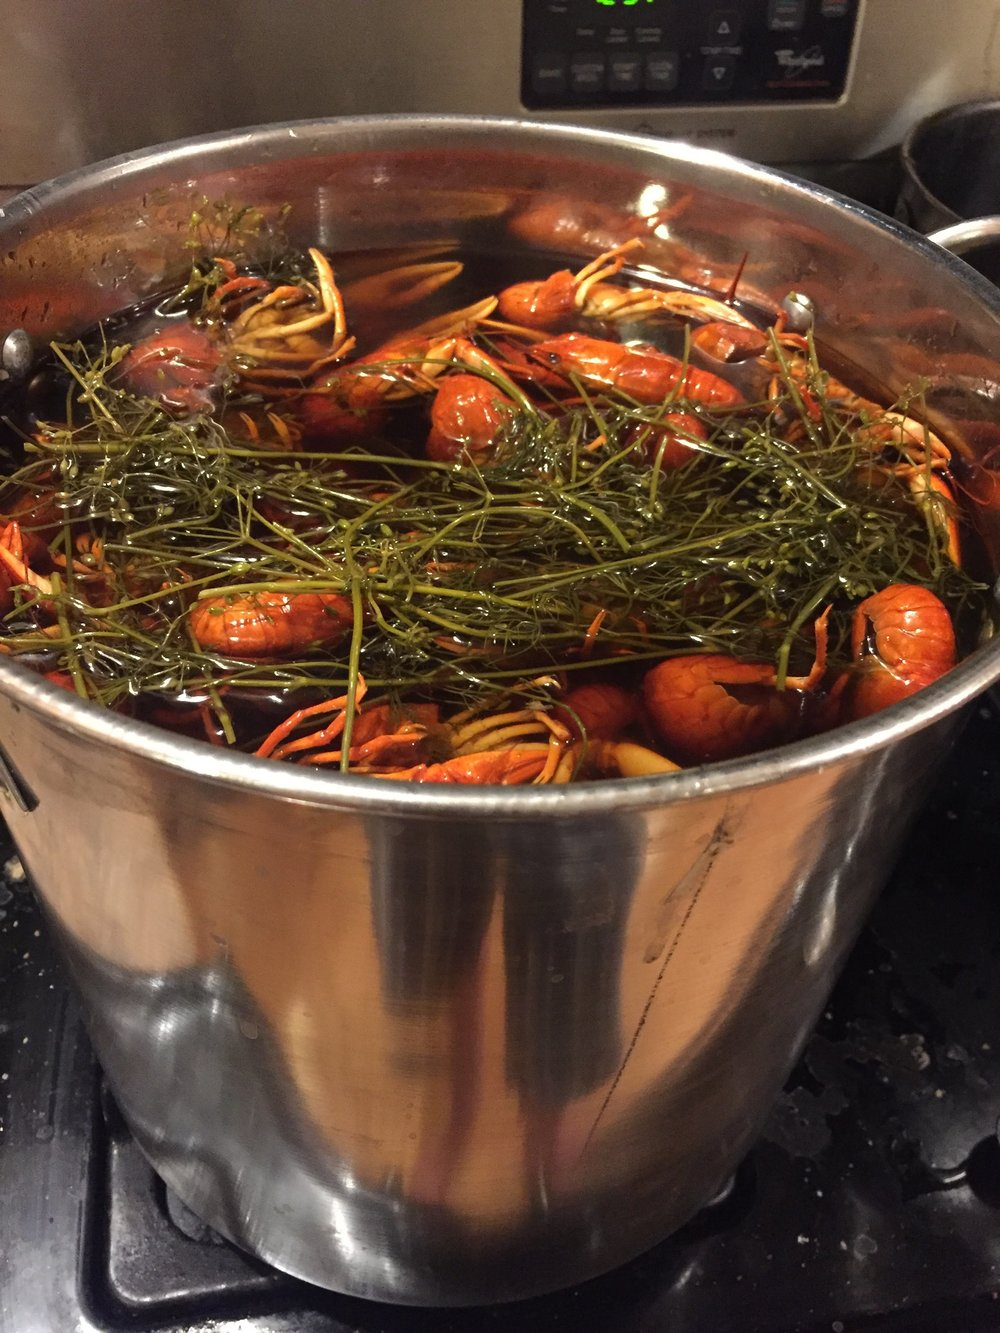 Let the crawdads rest in the beer and dill infused brine for 24h